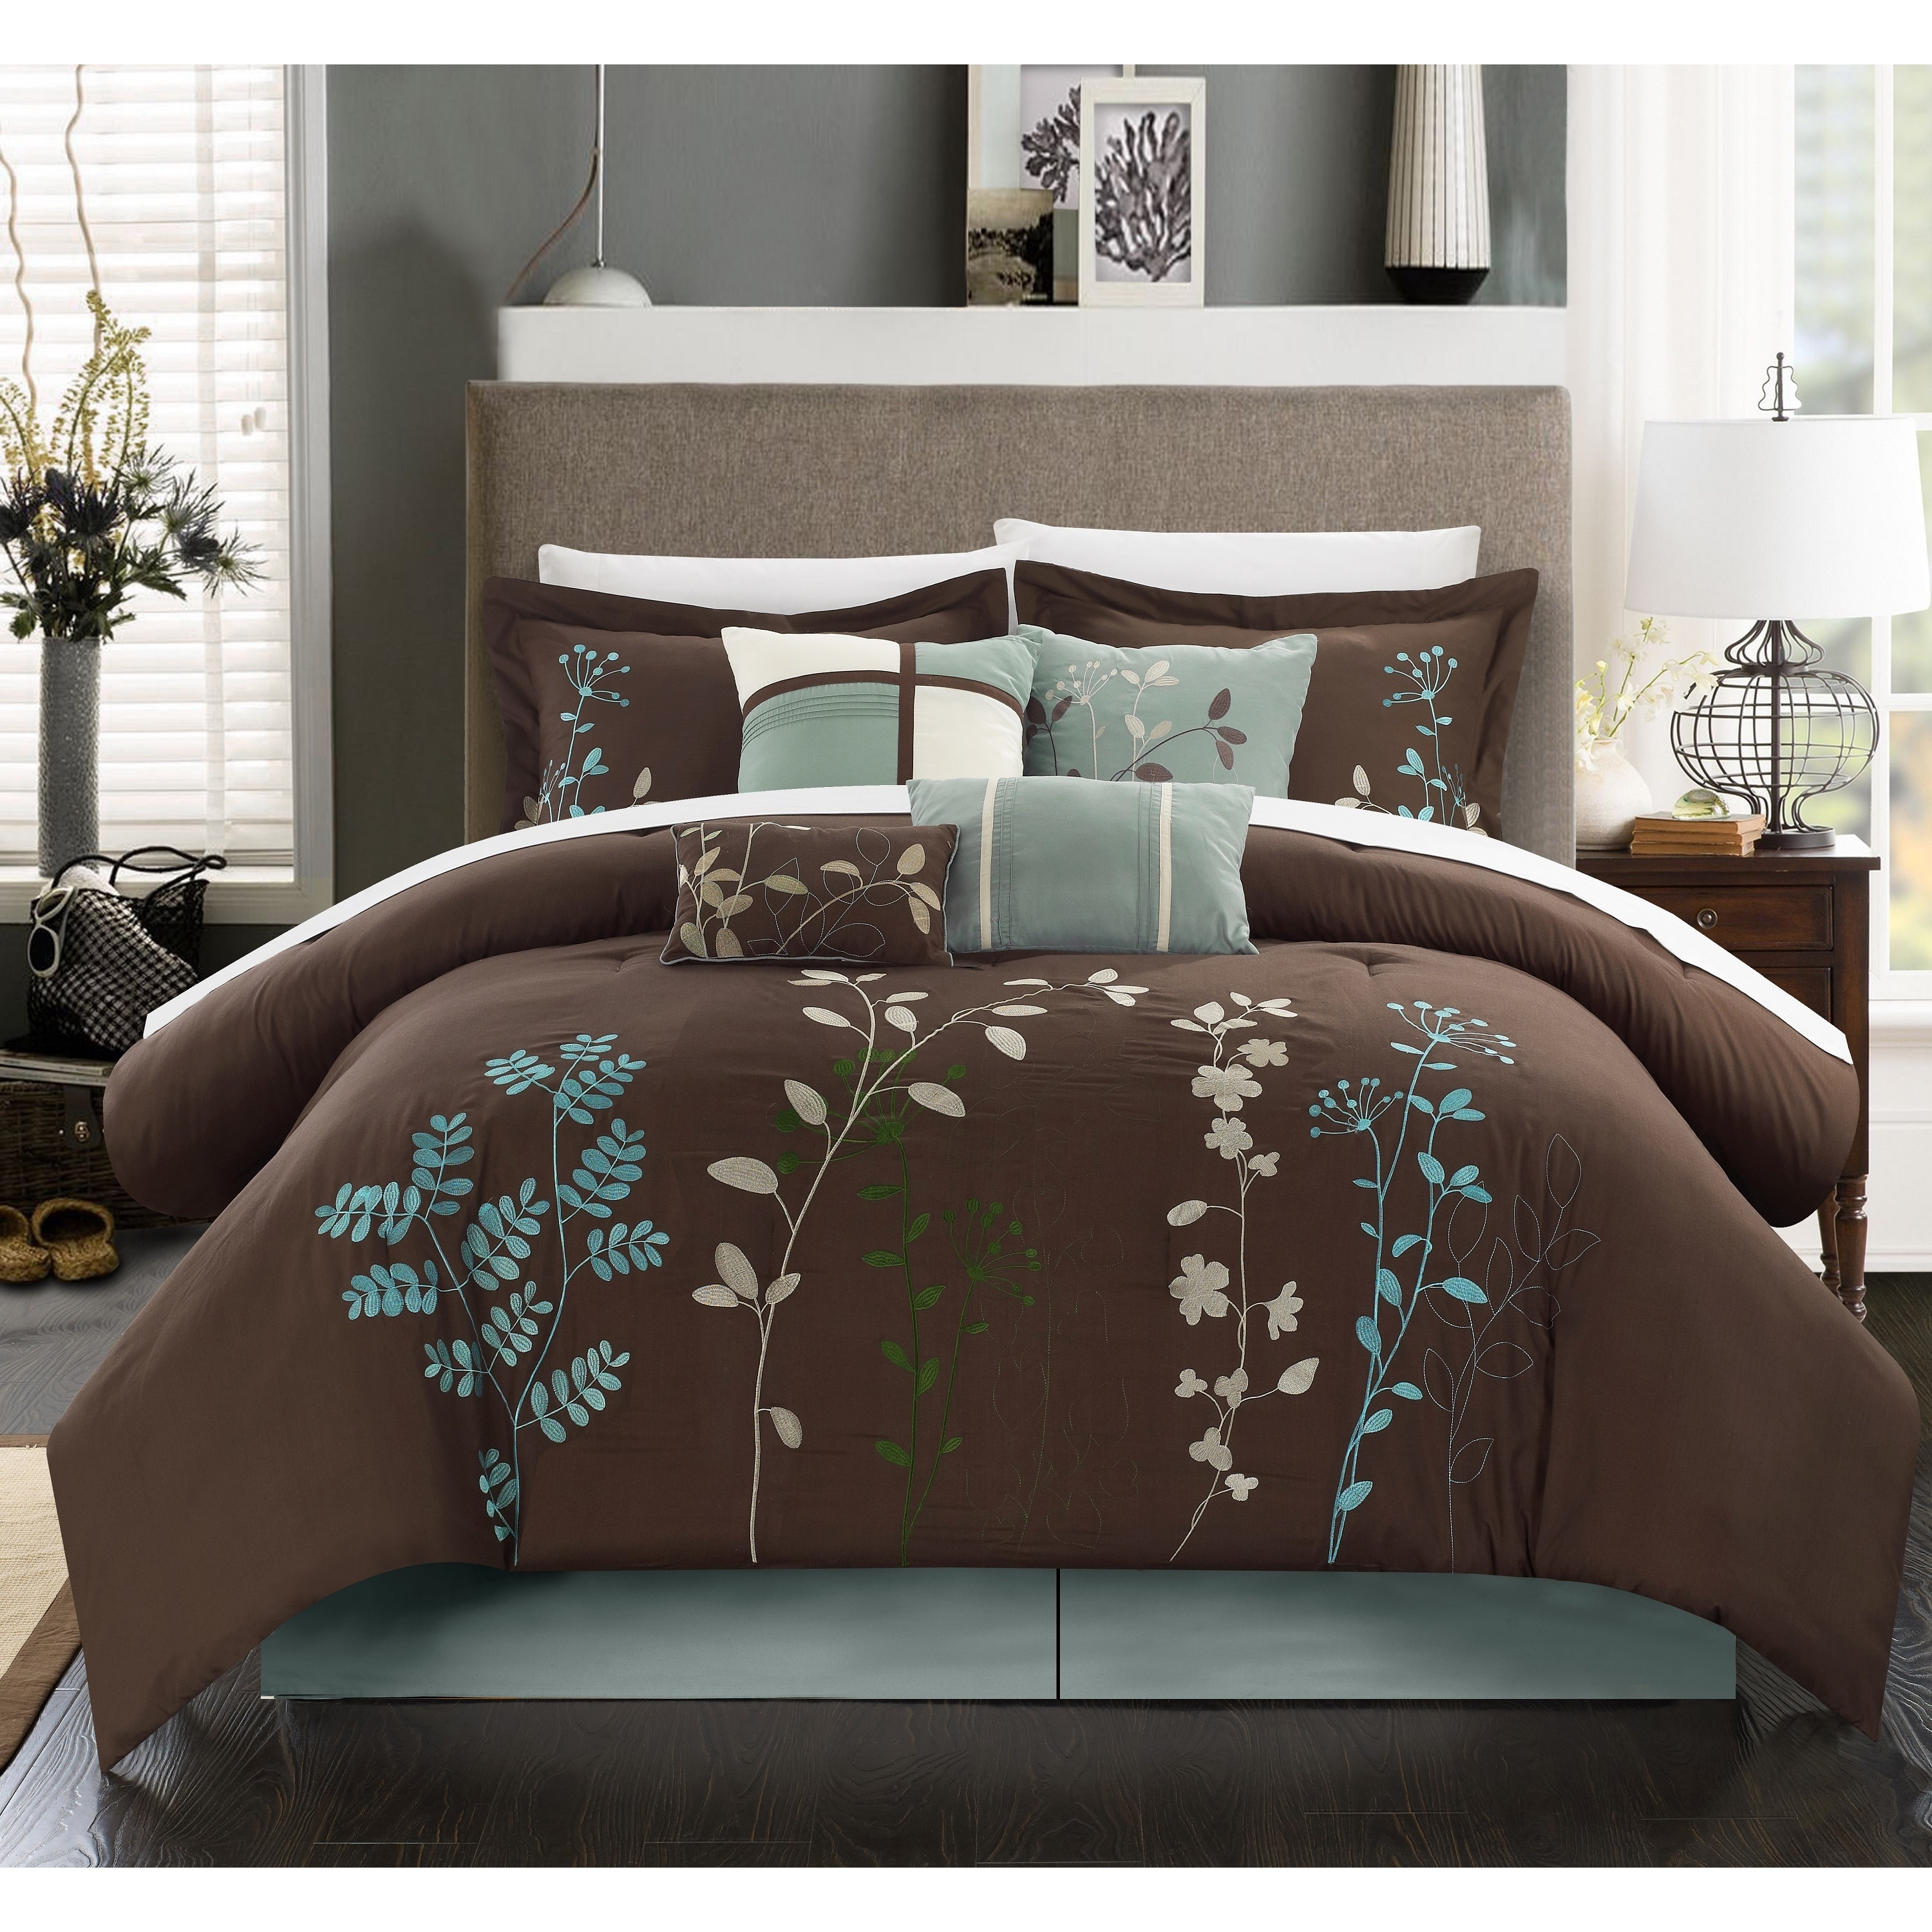 Bliss Garden Chocolate Brown 12-piece Bed in a Bag with Sheet Set